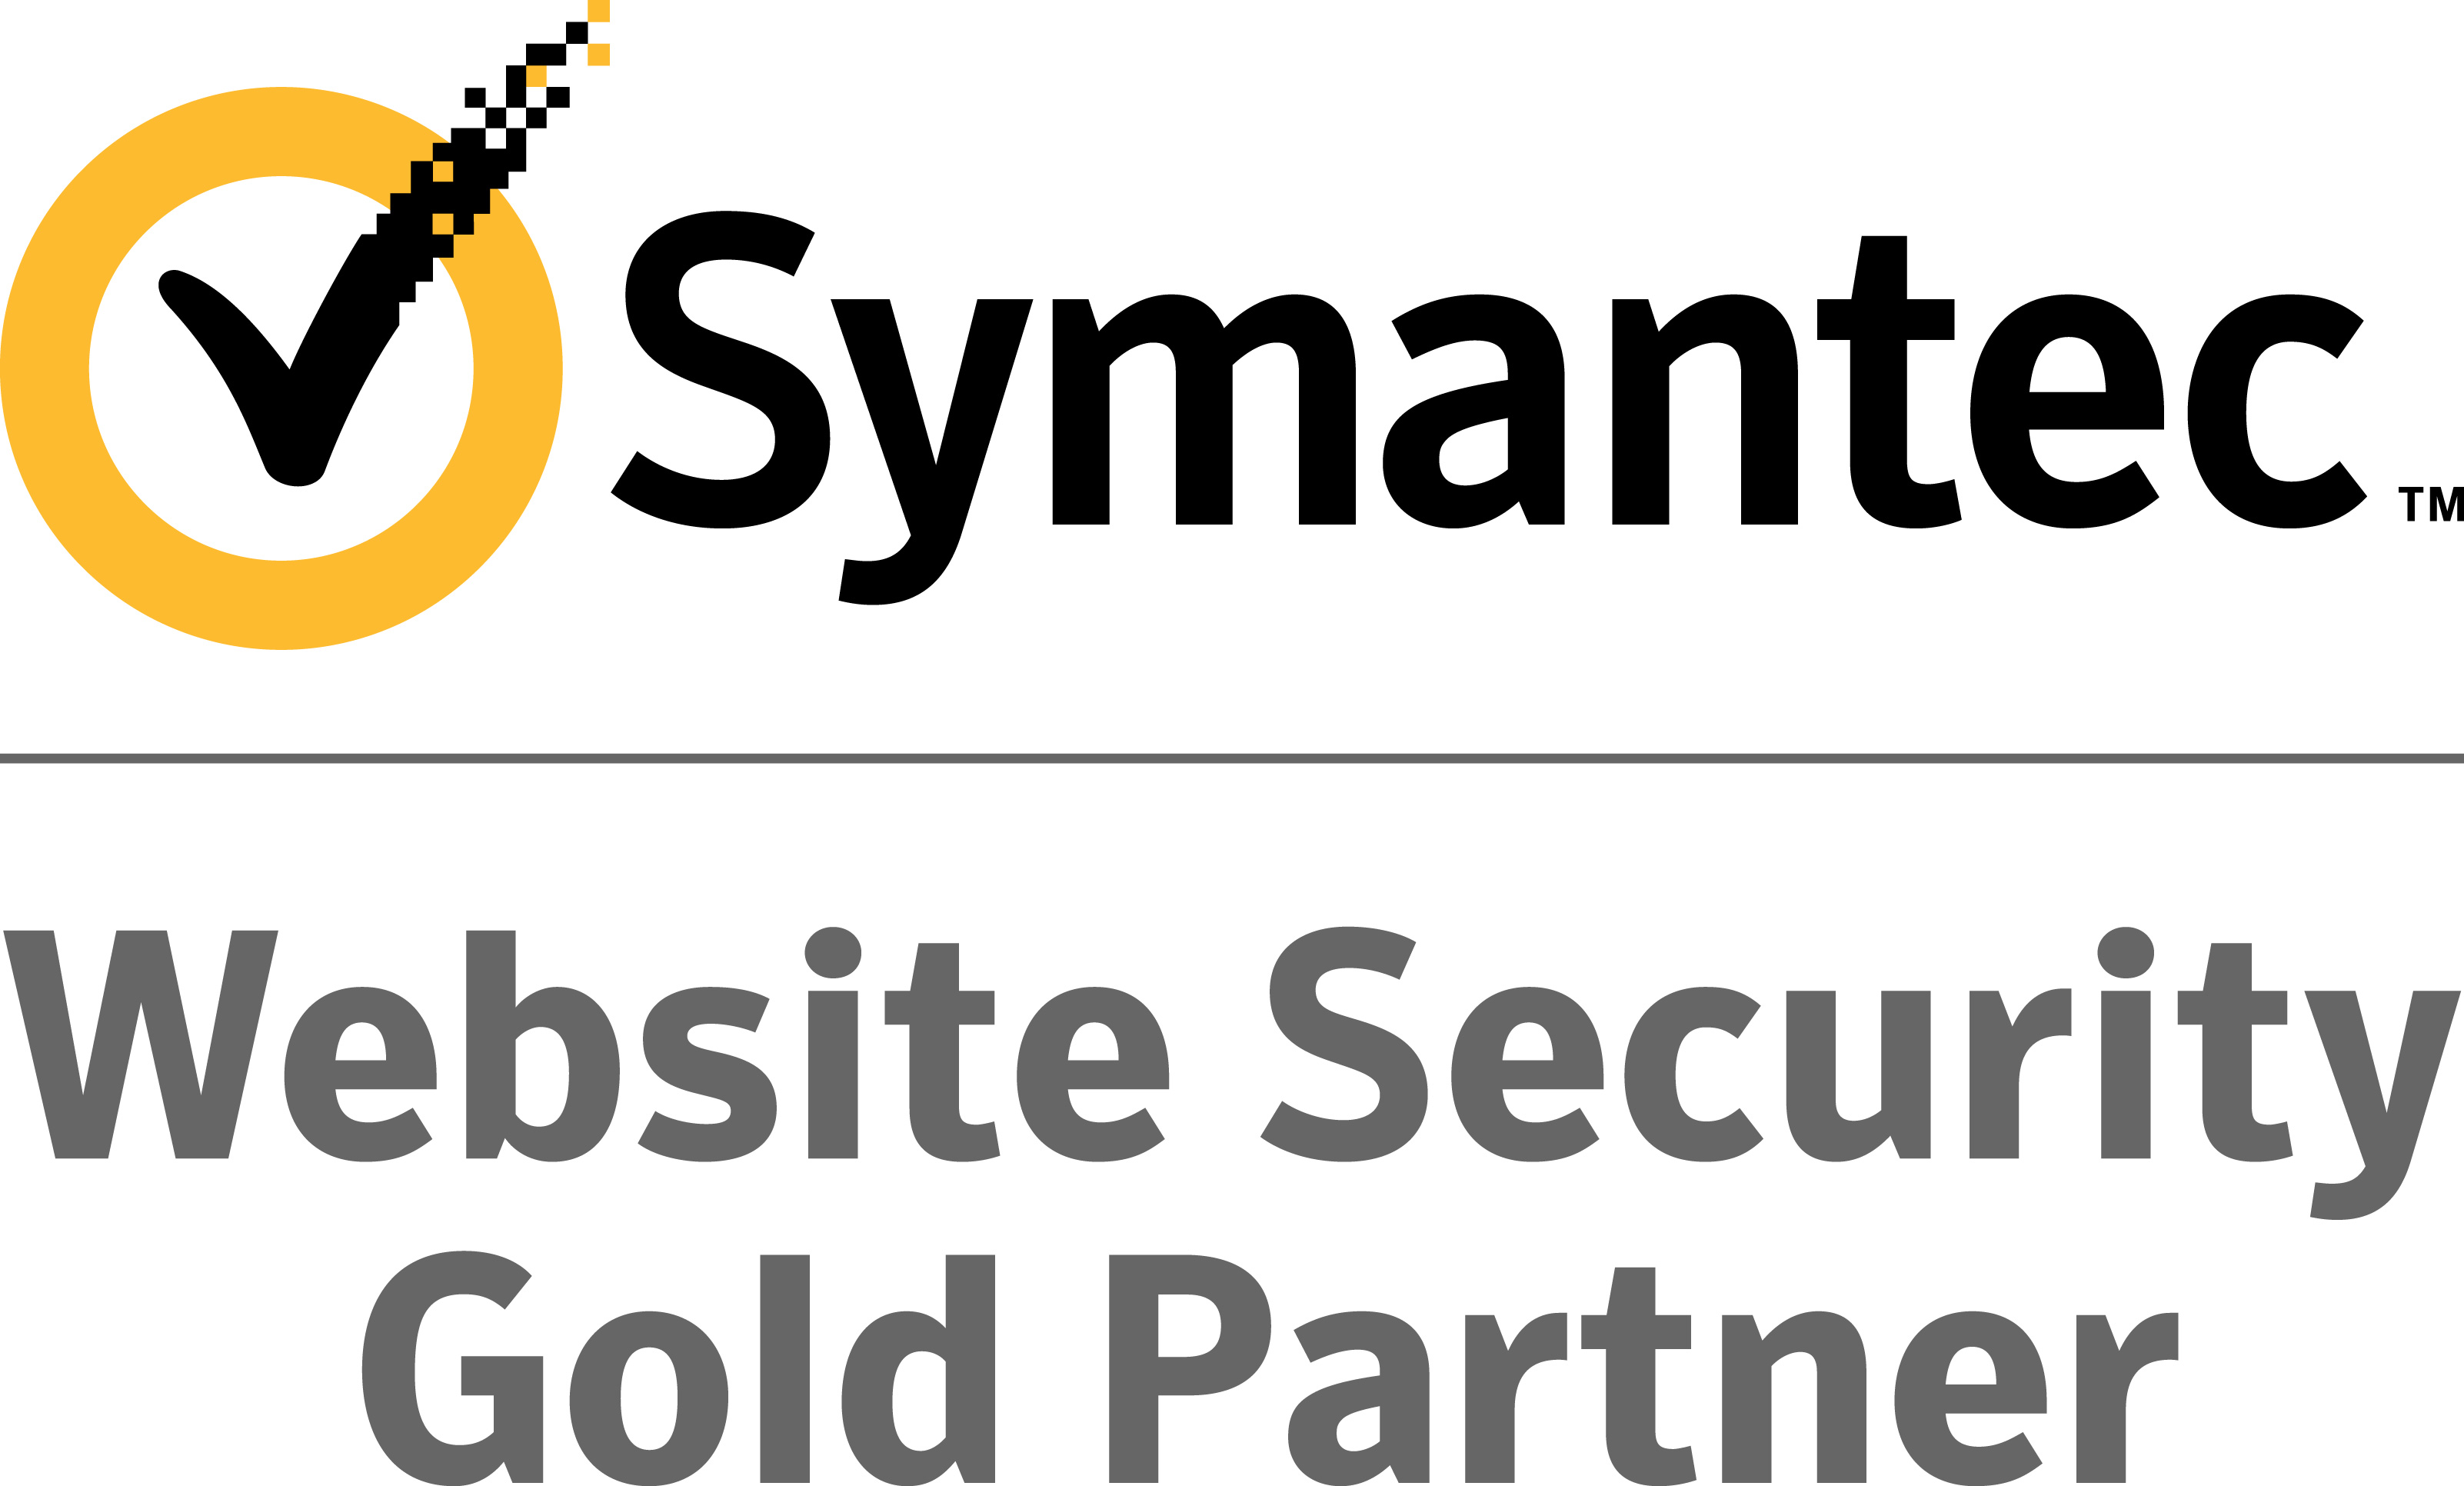 Symantec Website Security Gold Partner